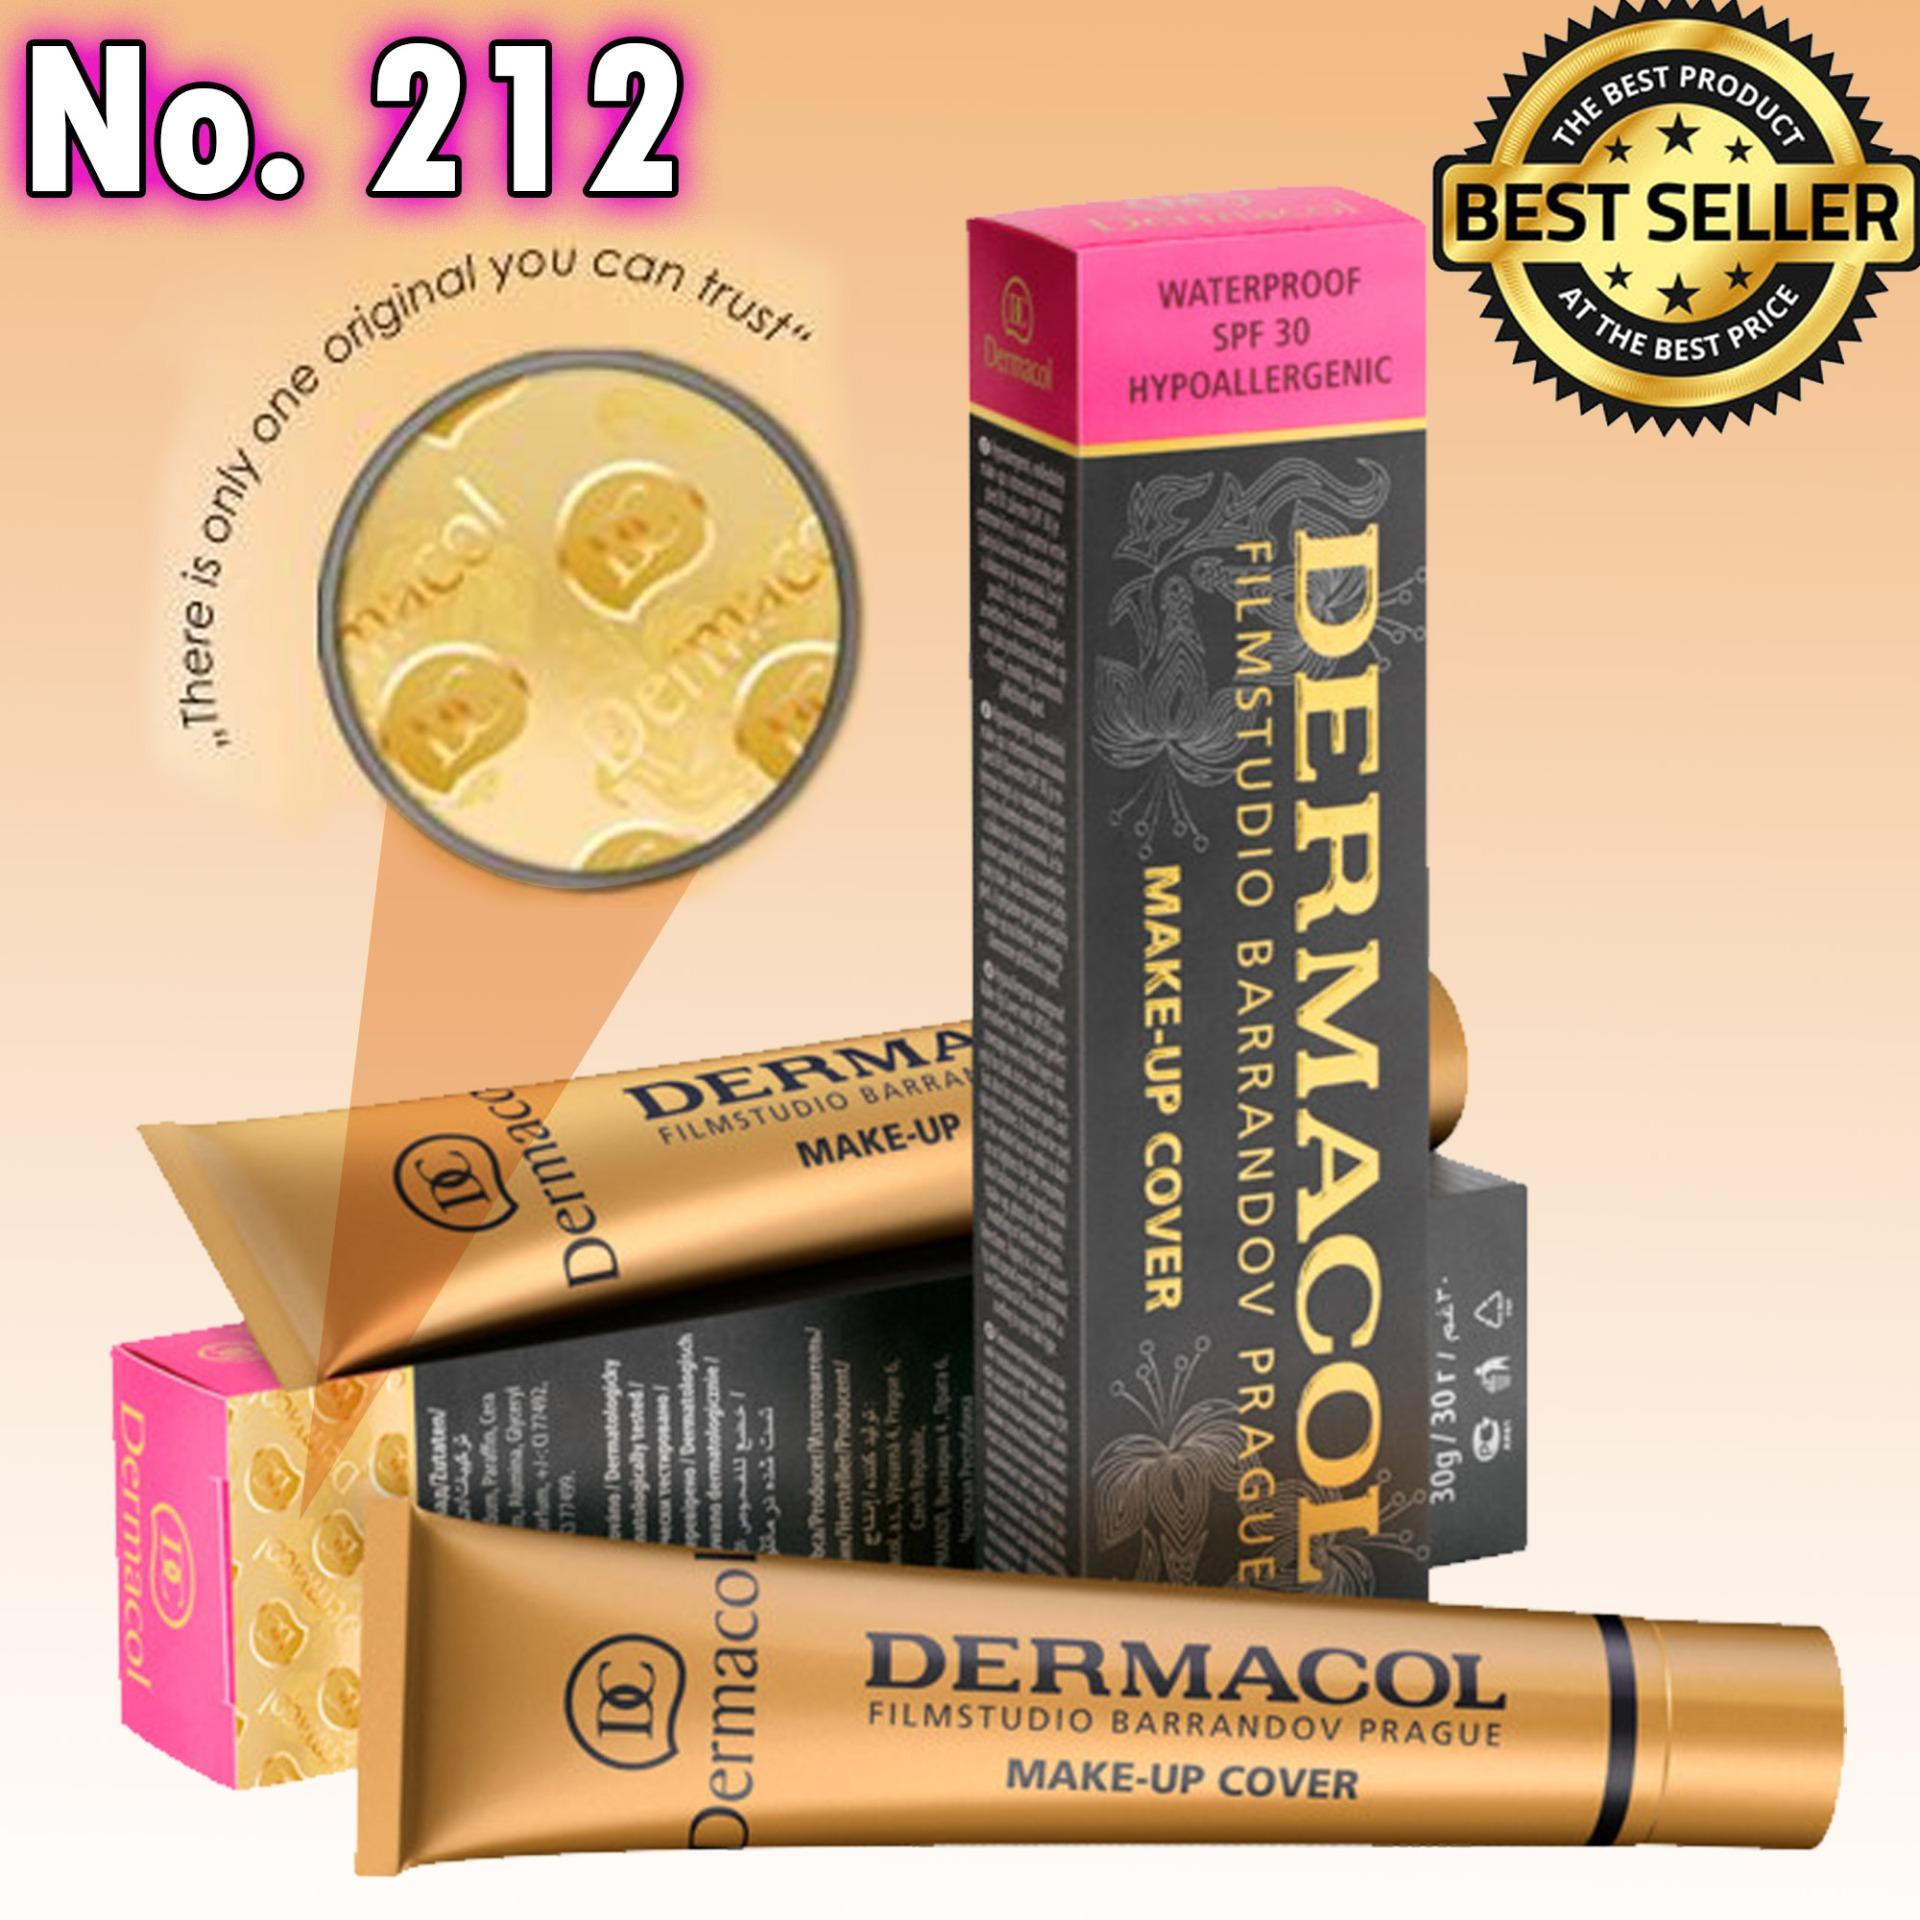 Dermacol Make-Up Cover Foundation Shades No.212 Philippines